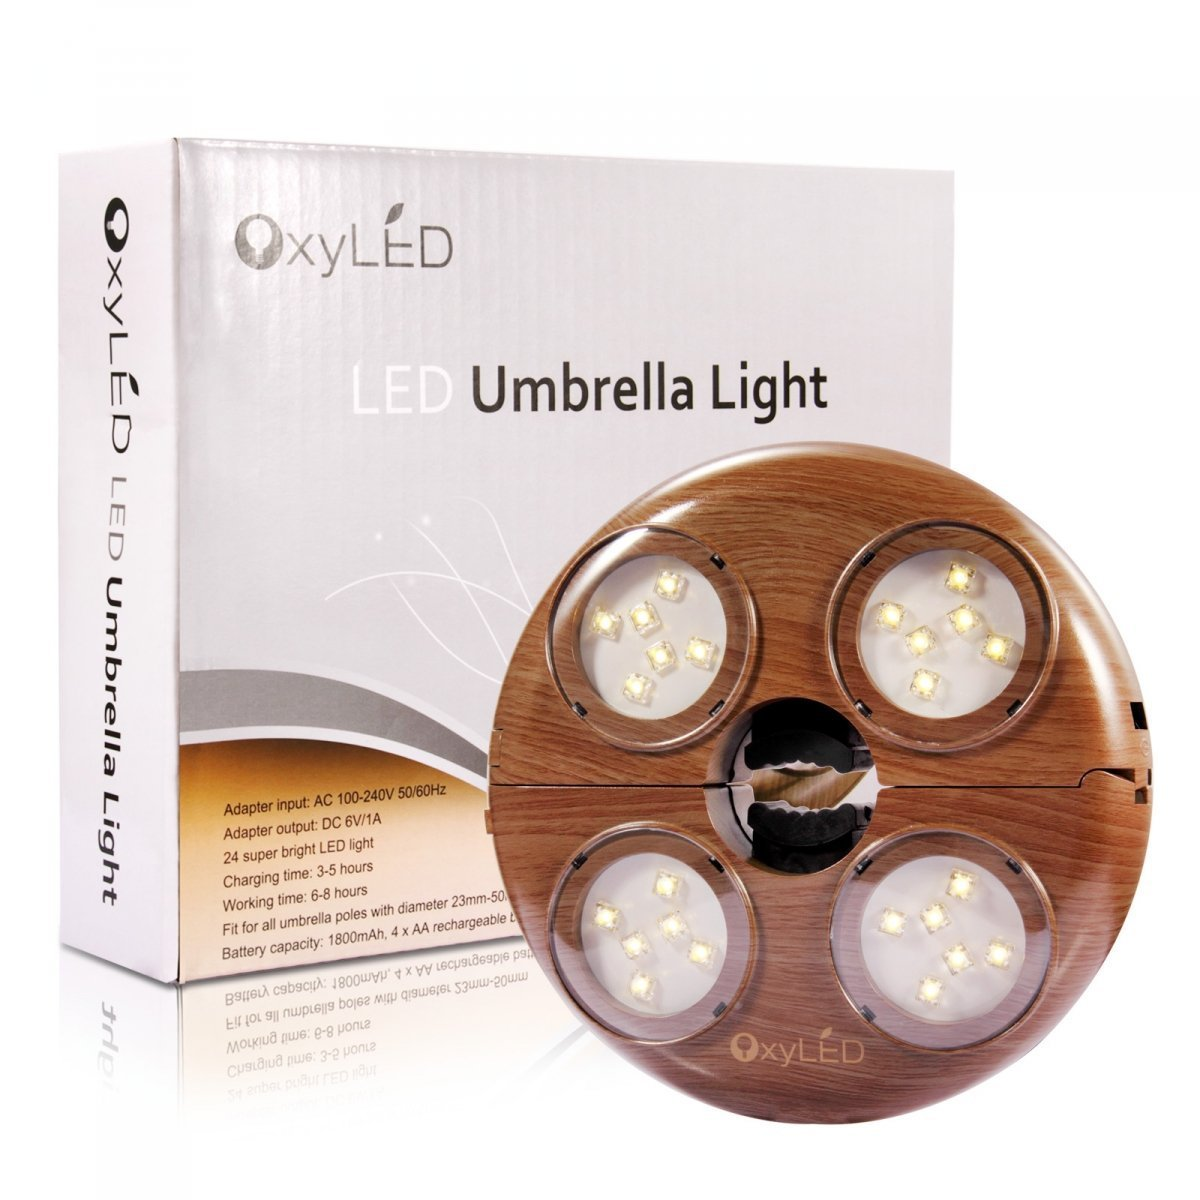 Patio Umbrella Light, OxyLED Cordless 24 LED Umbrella Lights, 280 Lumens Umbrella Pole Light for Beach Umbrella Camping Tent Canopy, Battery Operated, 4 Rechargeable AA Batteries Included by OxyLED (Image #5)